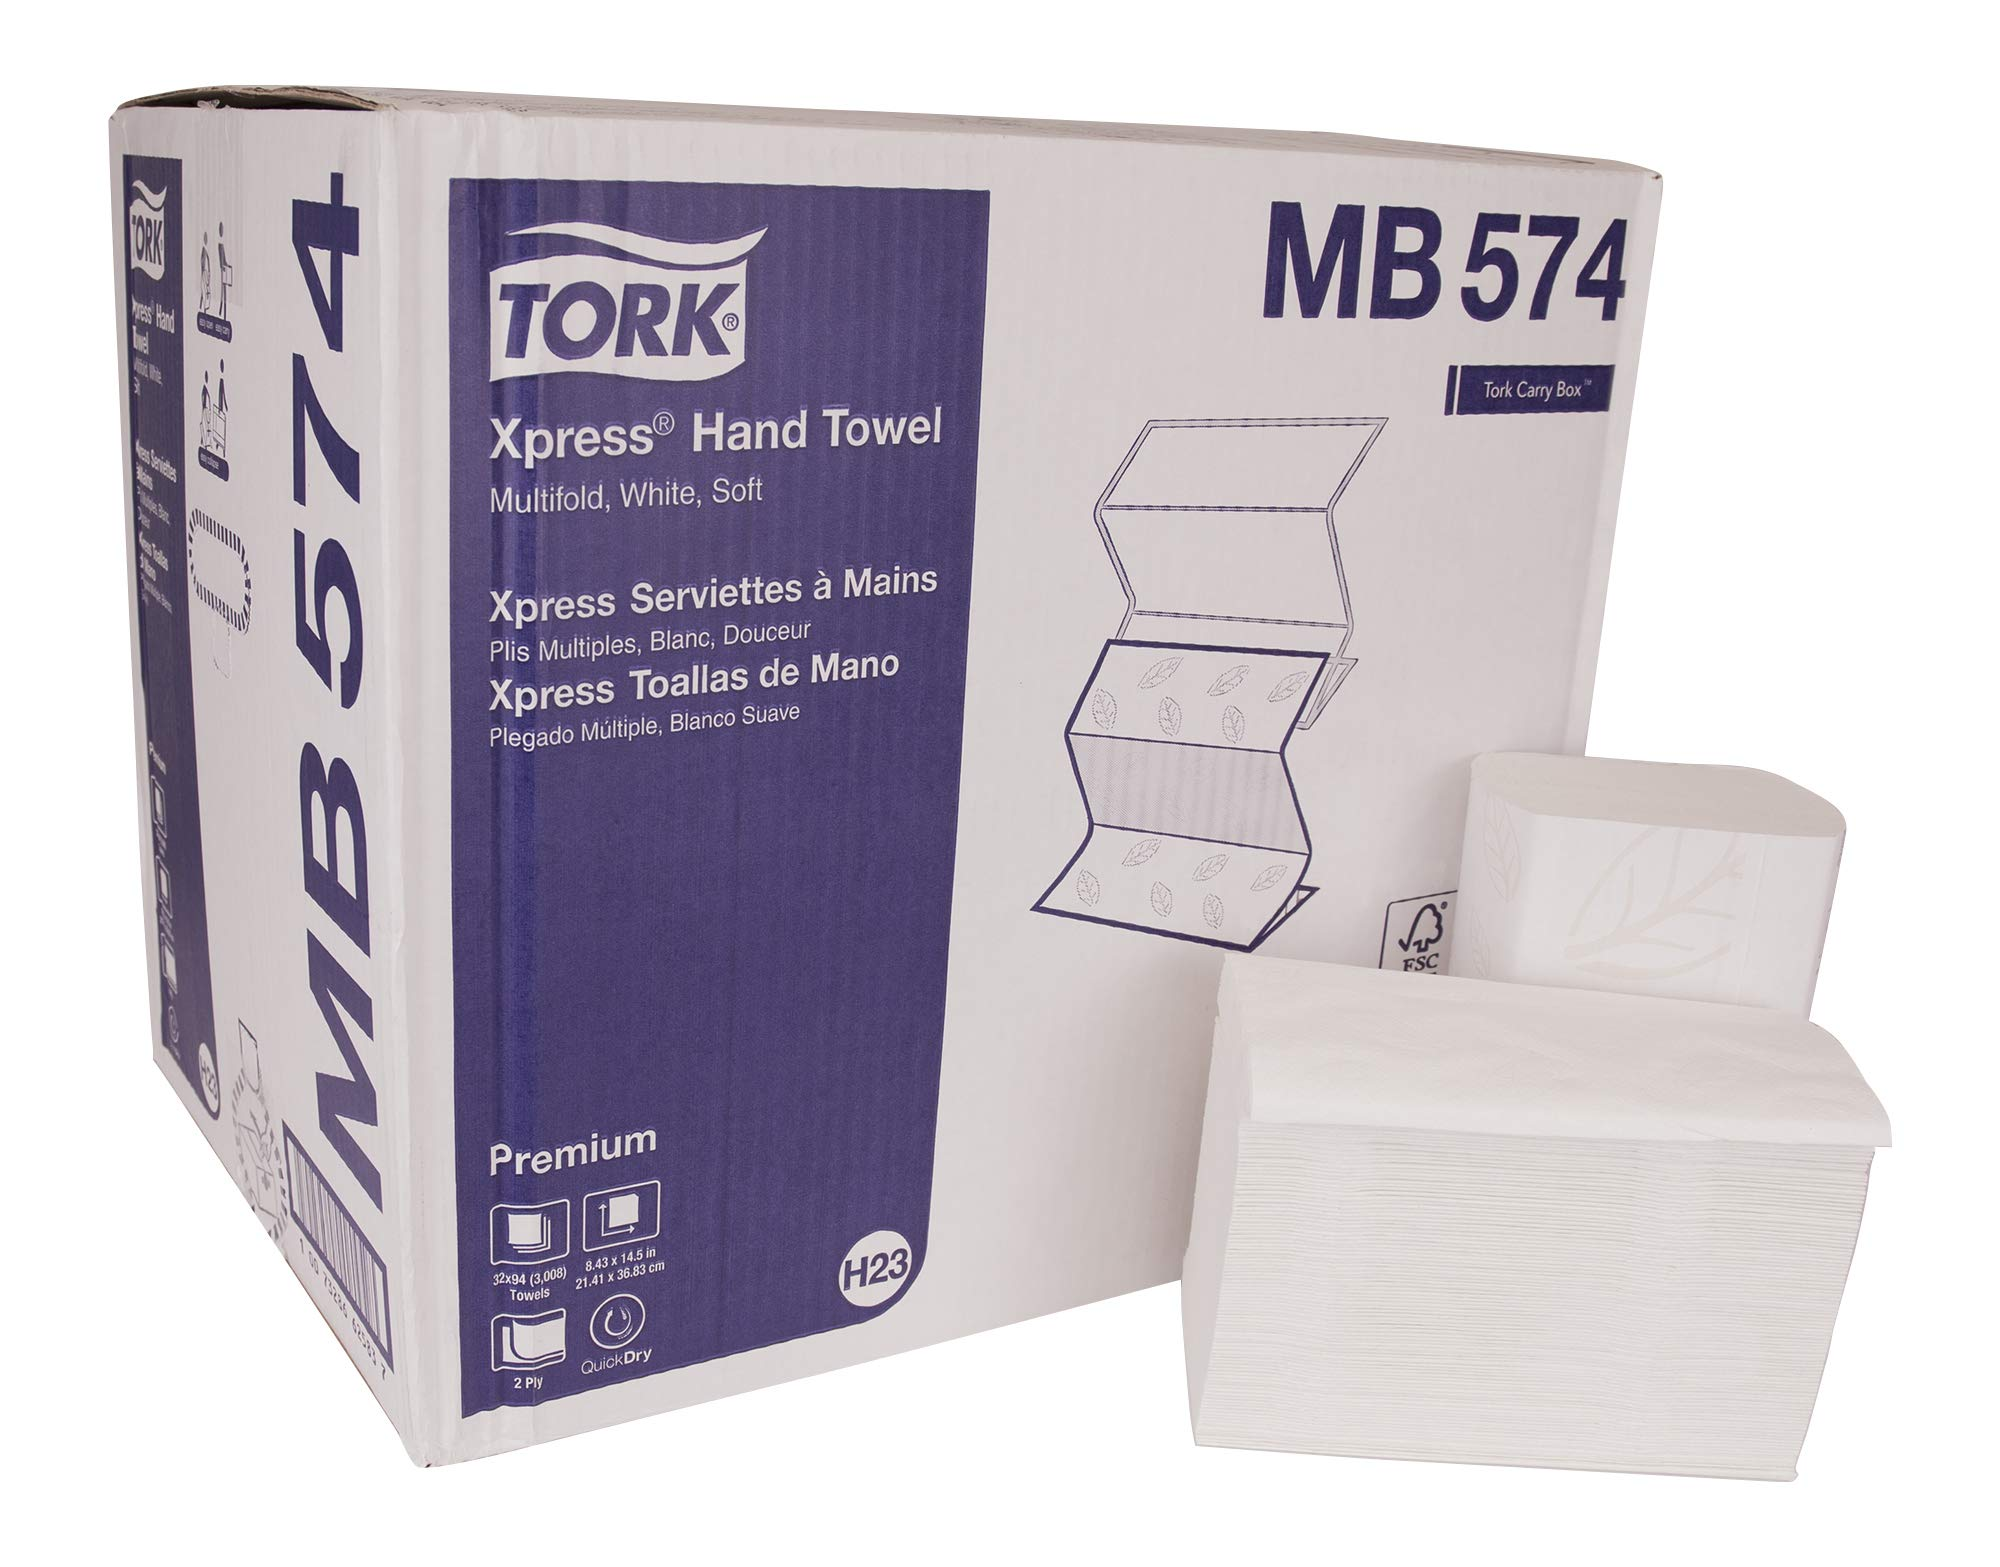 Tork Premium MB574 Soft Xpress Multifold Paper Hand Towel, 4-Panel, 2-Ply, 8.4'' Width x 14.5'' Length, White (Case of 32 Packs, 94 per Pack, 3,008 Towels)